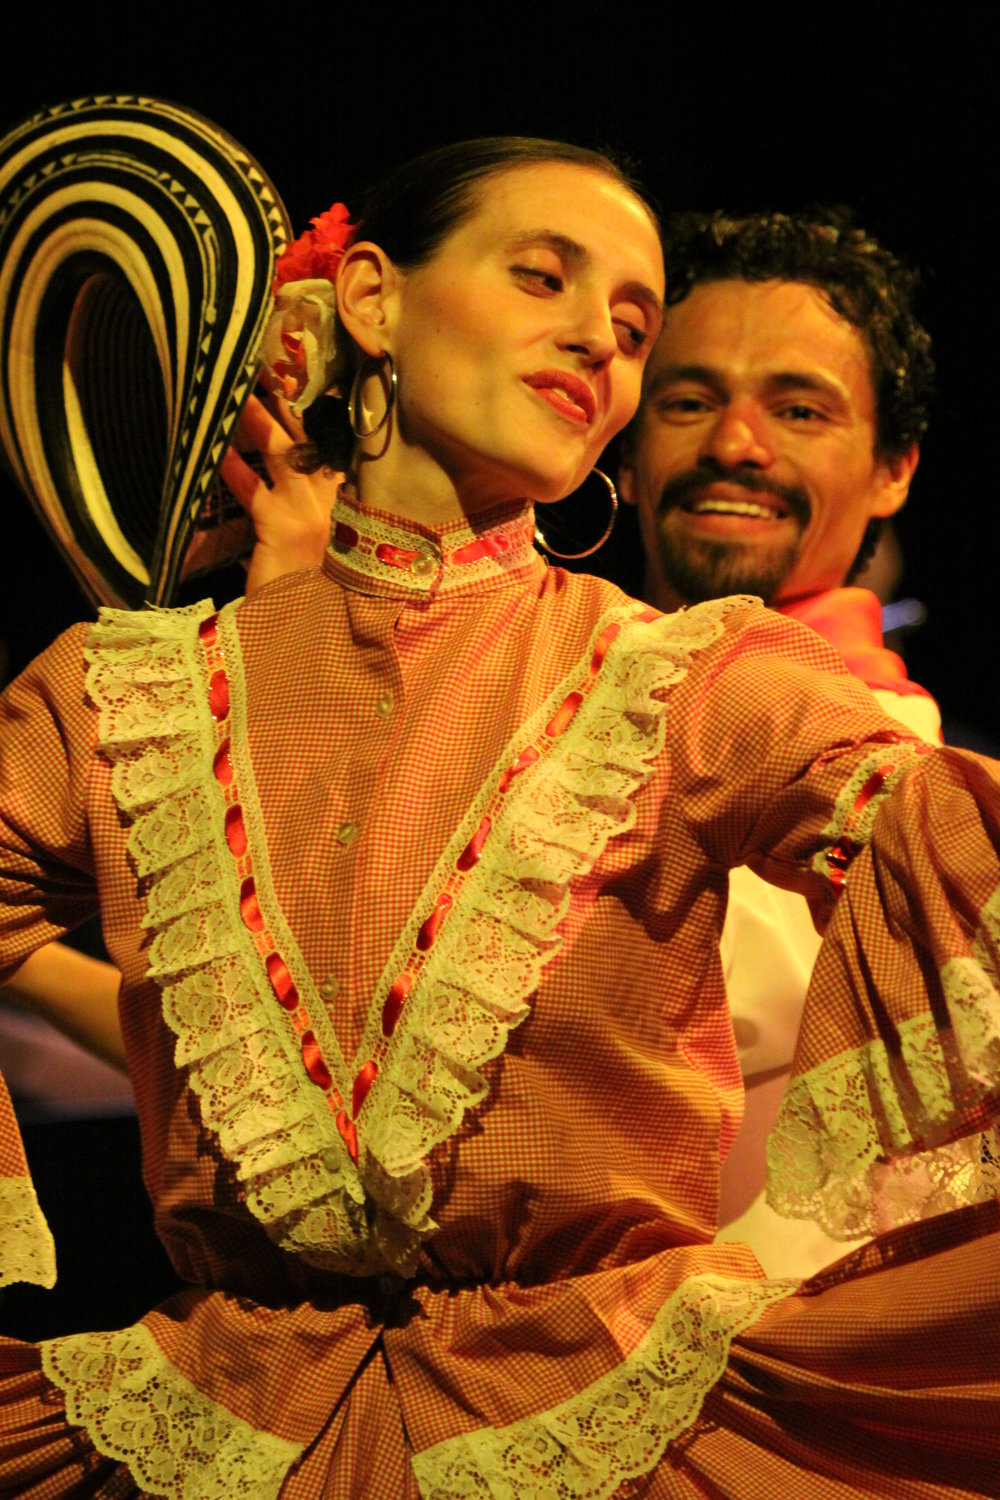 pajarillo pinta'o Anna and Daniel.jpg